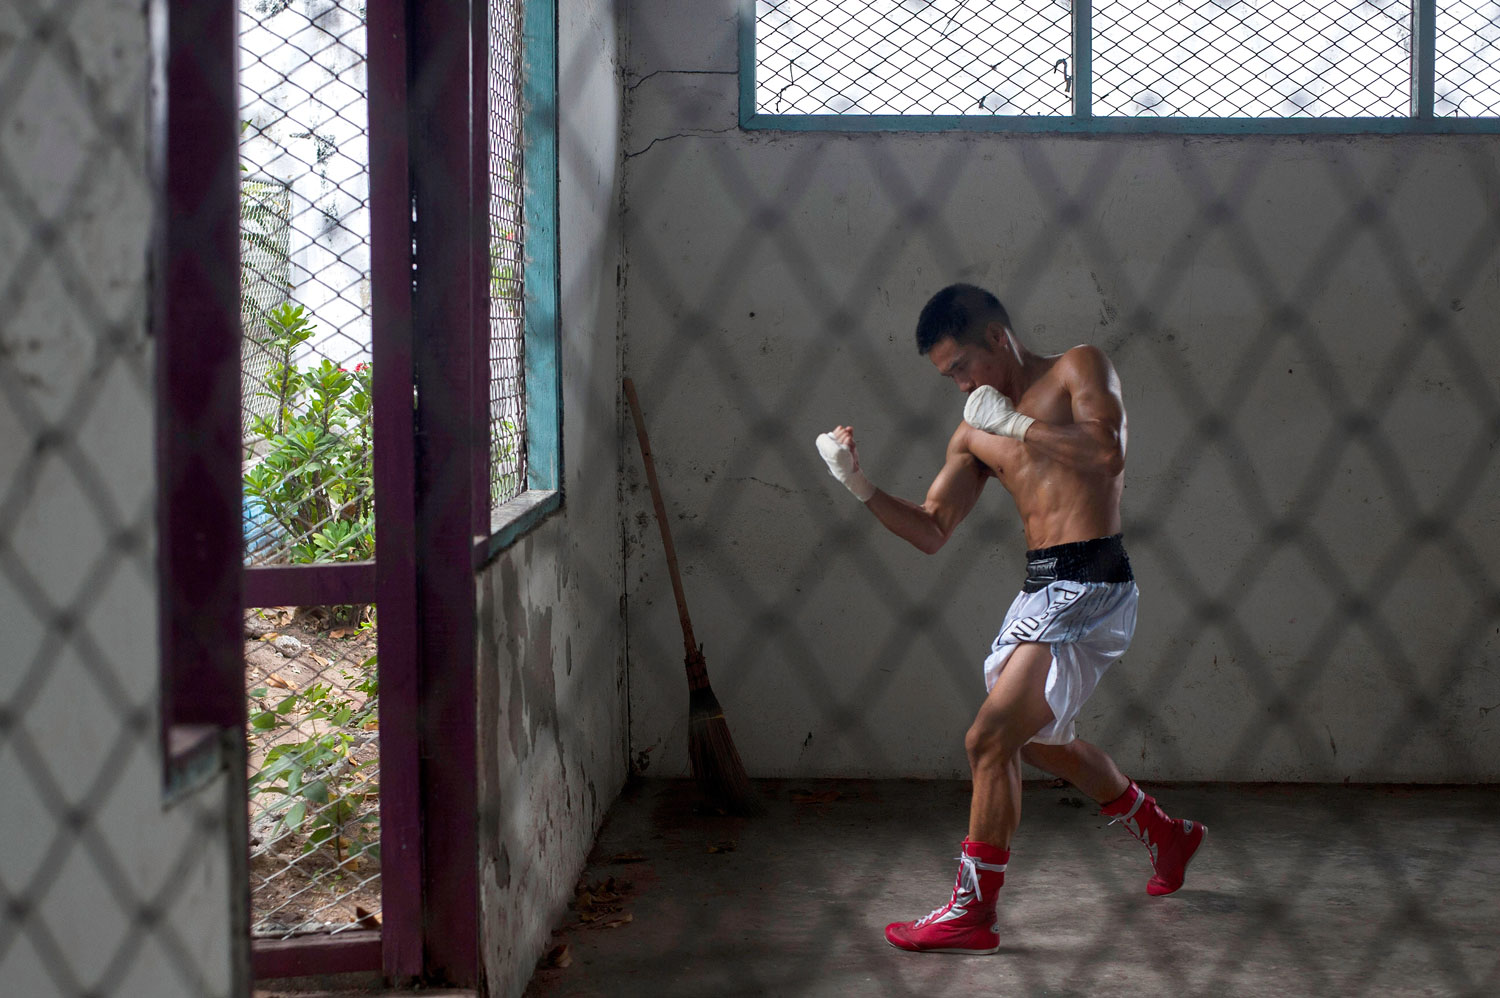 An inmate prepares himself before his fight at Klong Pai prison on July 12, 2014 in Nakhon Ratchasima, Thailand.